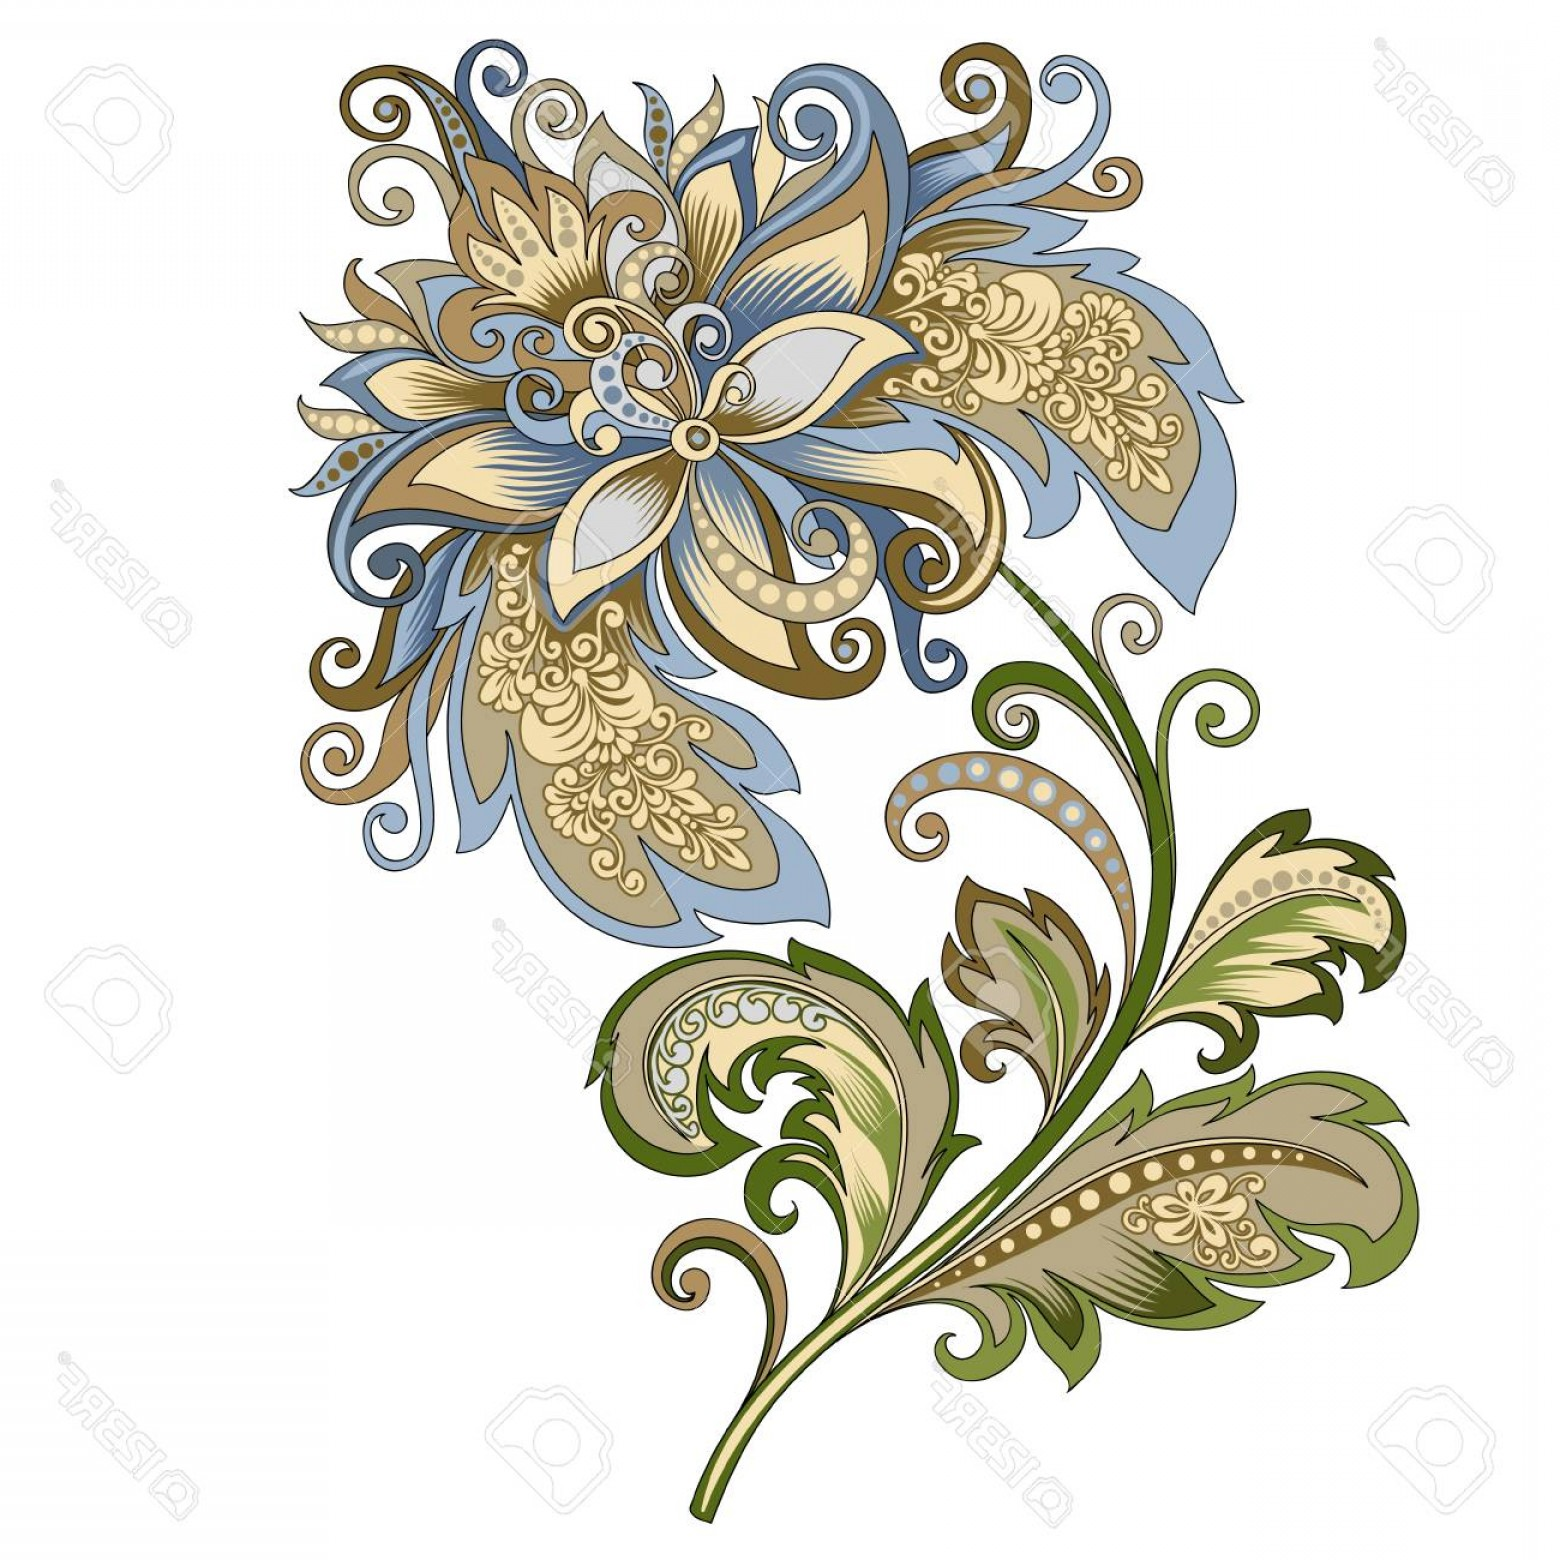 Gold And Blue Flower Vector: Photostock Vector Decorative Vintage Gold And Blue Flower